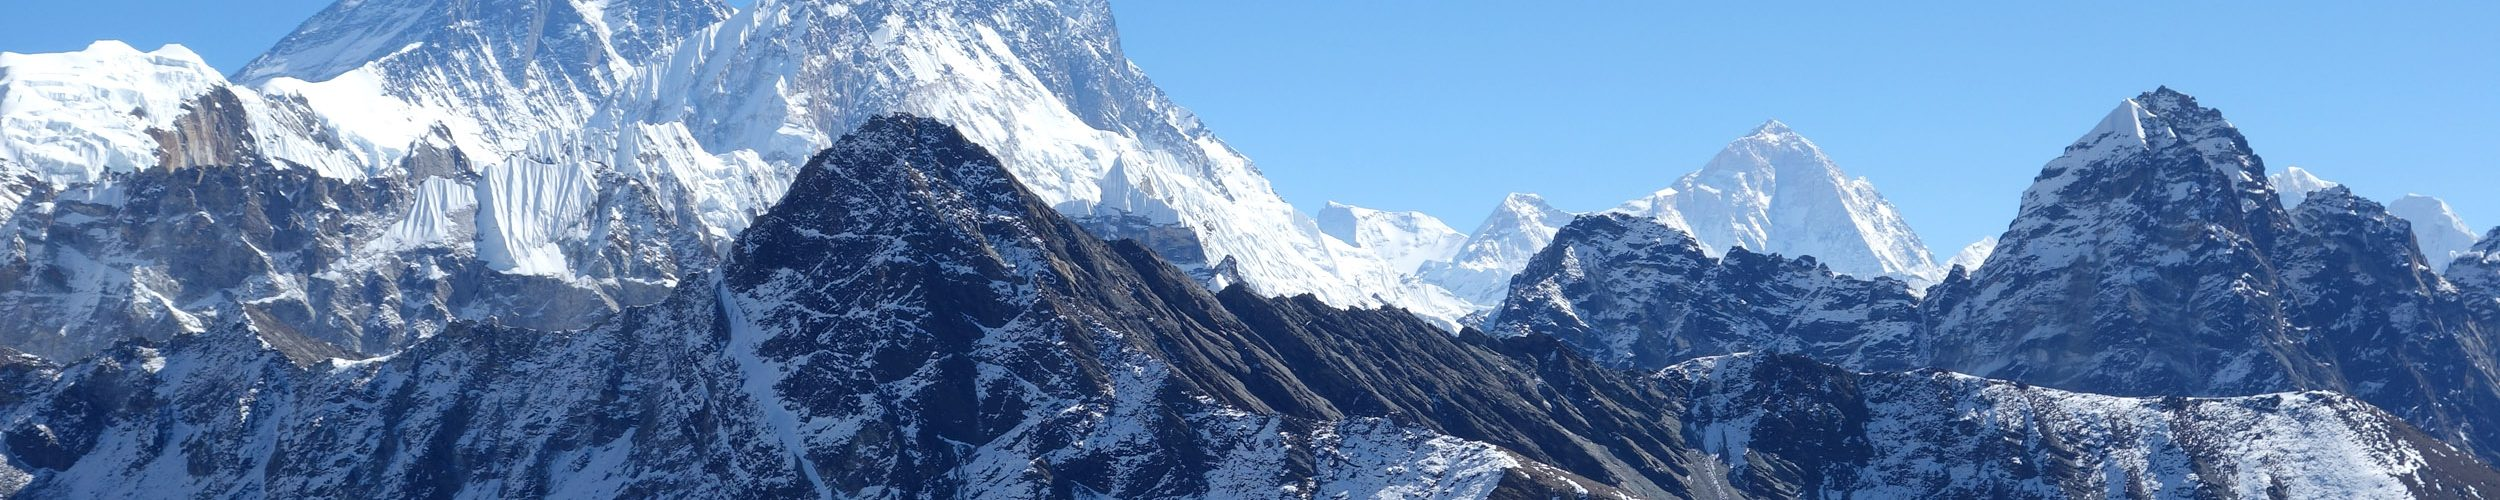 Everest Gokyo ChoLa trek